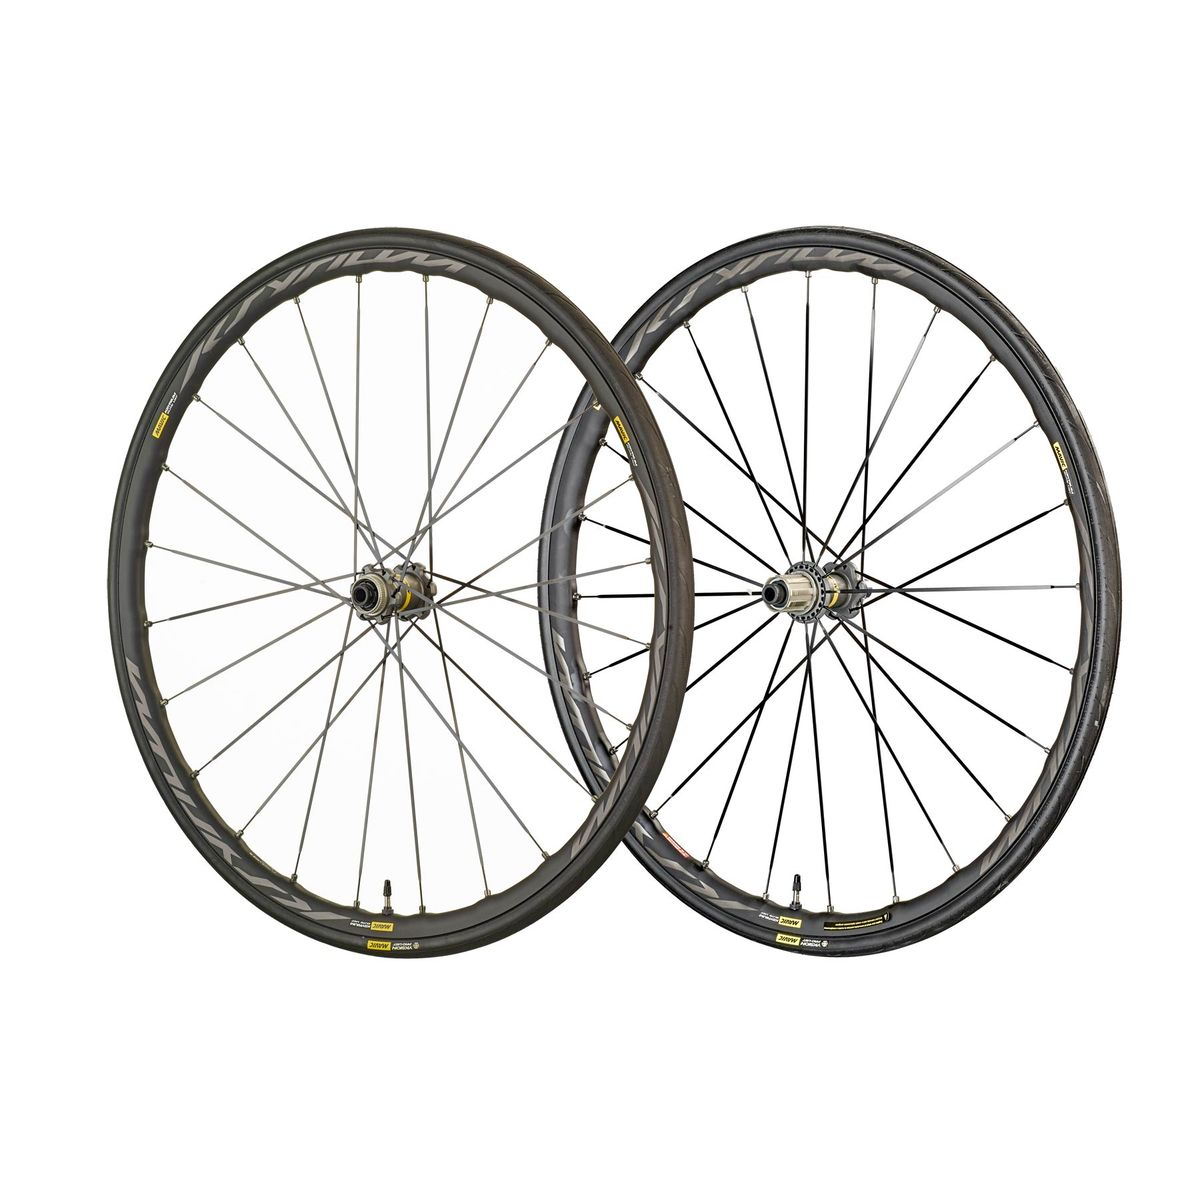 "Ksyrium Elite UST Disc Centerlock WTS 28""/700 C road wheels"